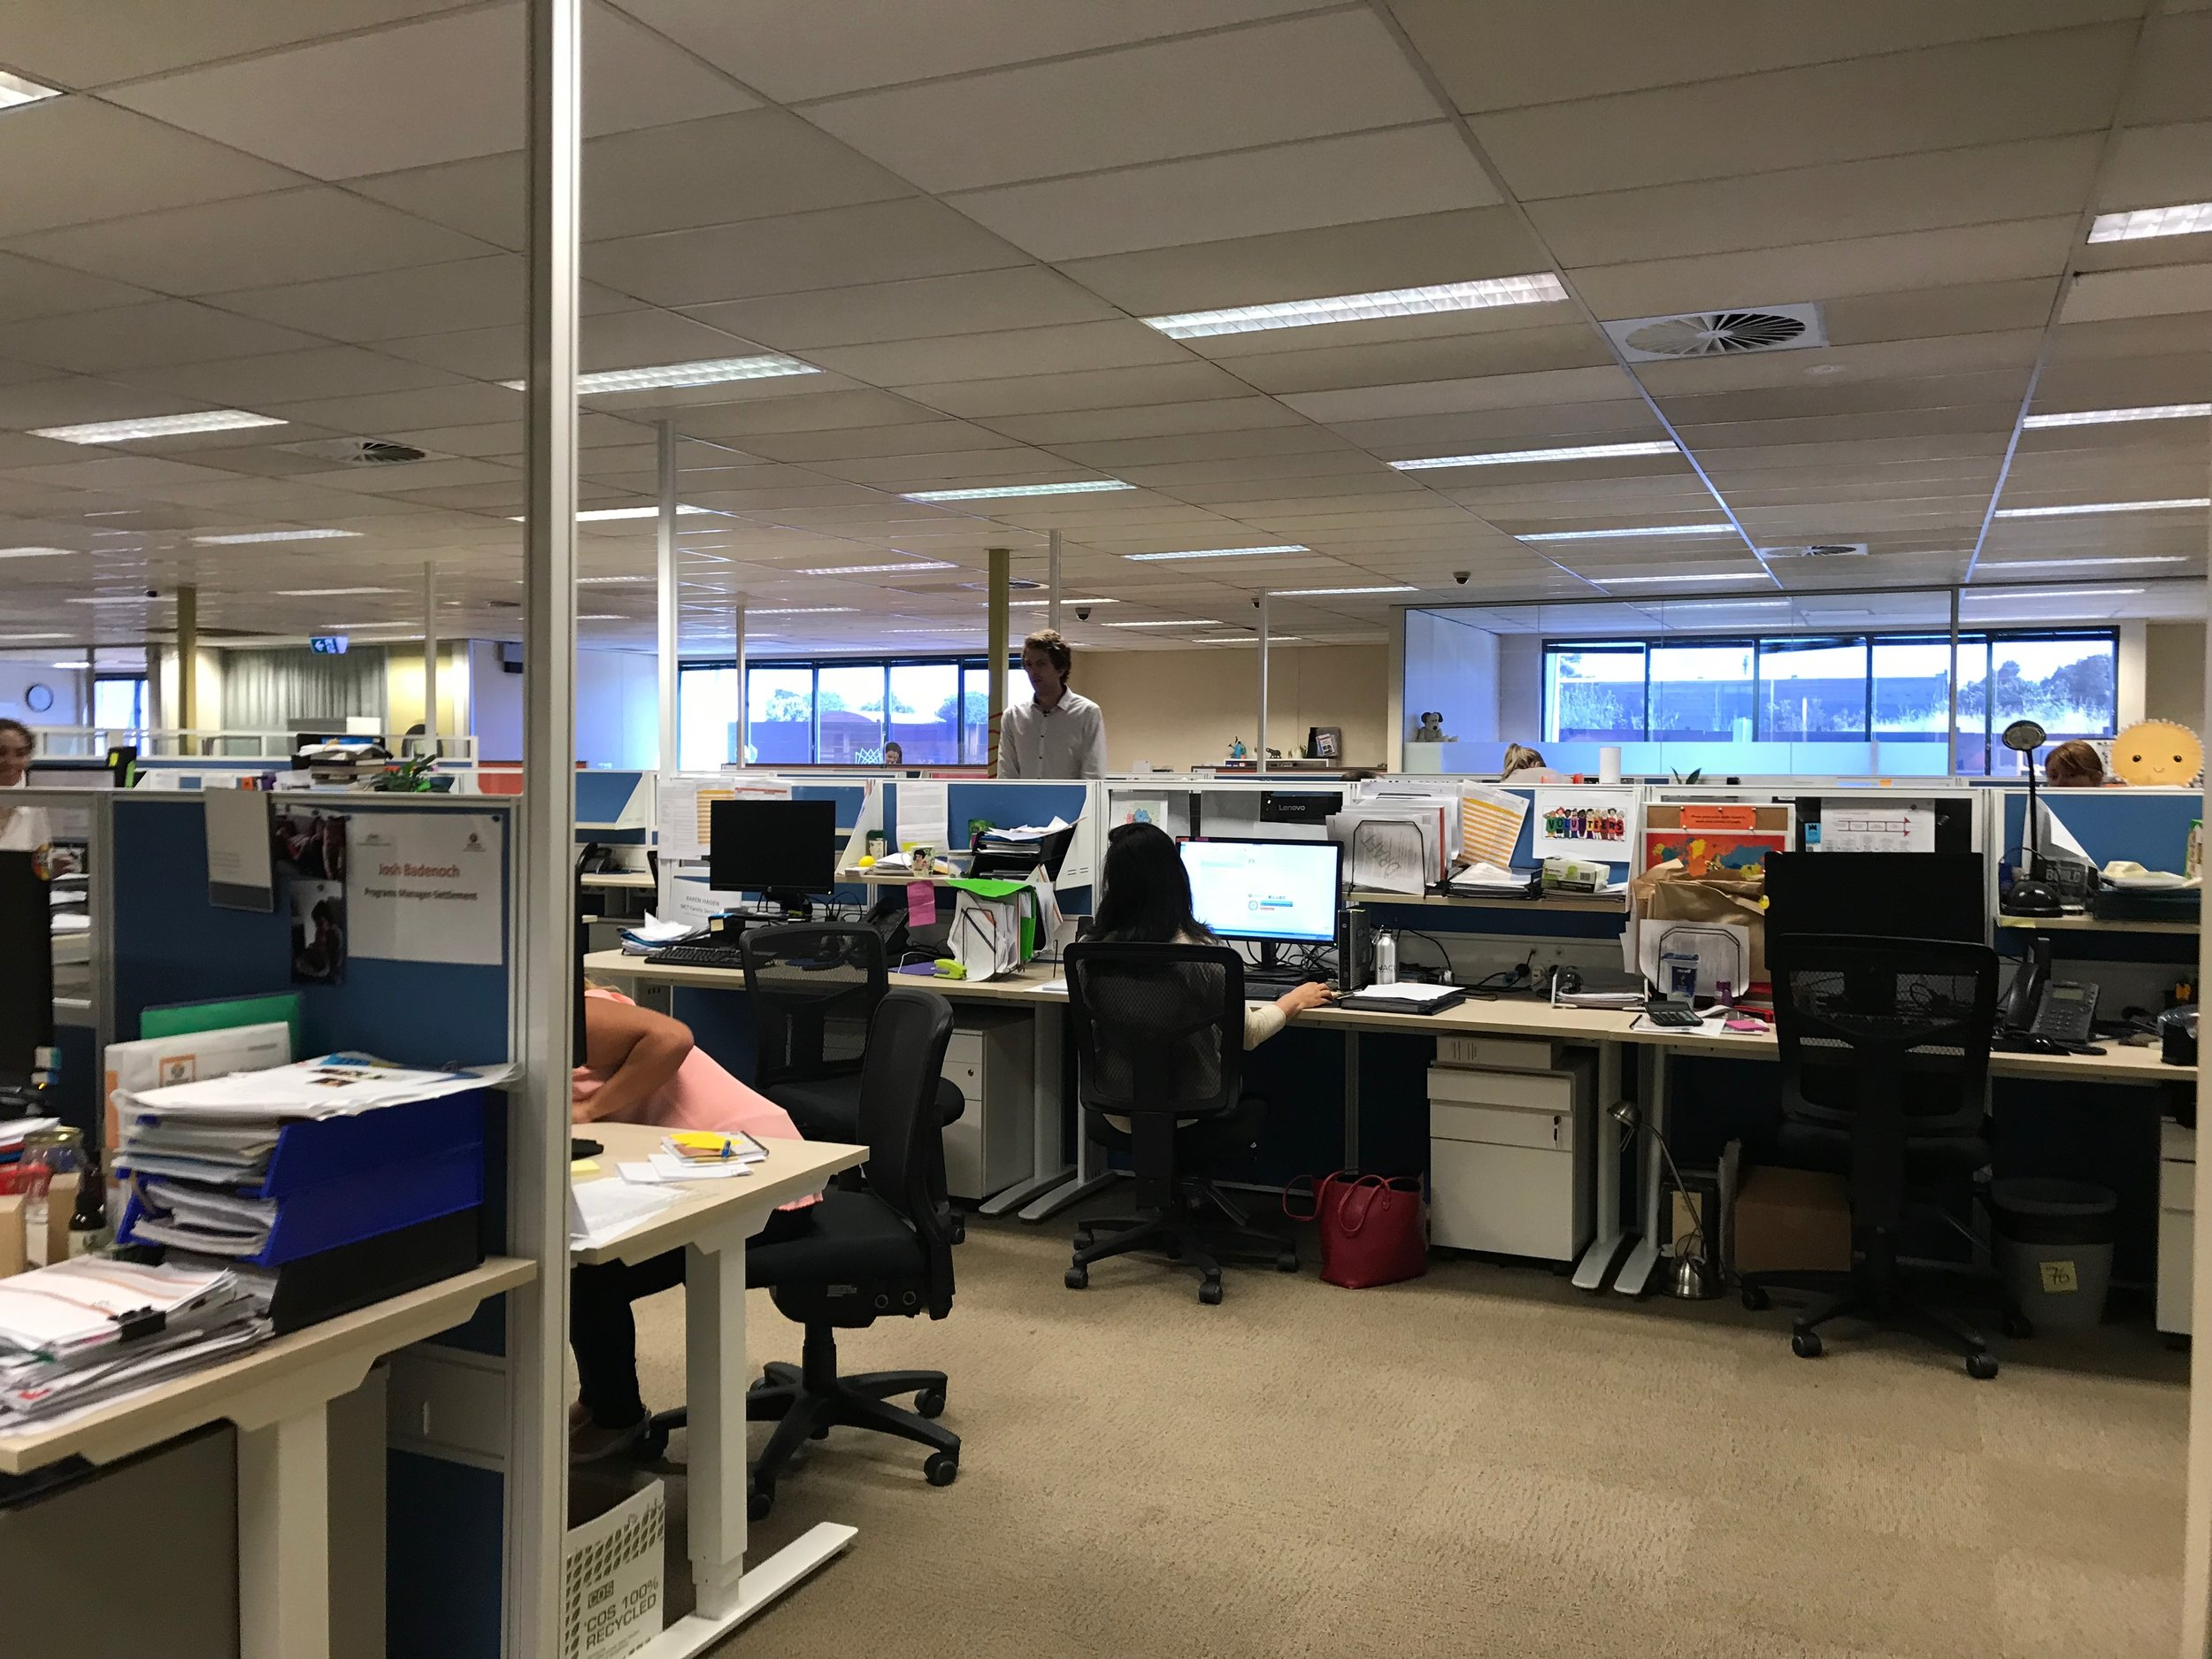 The office space is open plan, with no private offices for any staff member. Similar services are grouped together, as are services who hire just one or two desks.